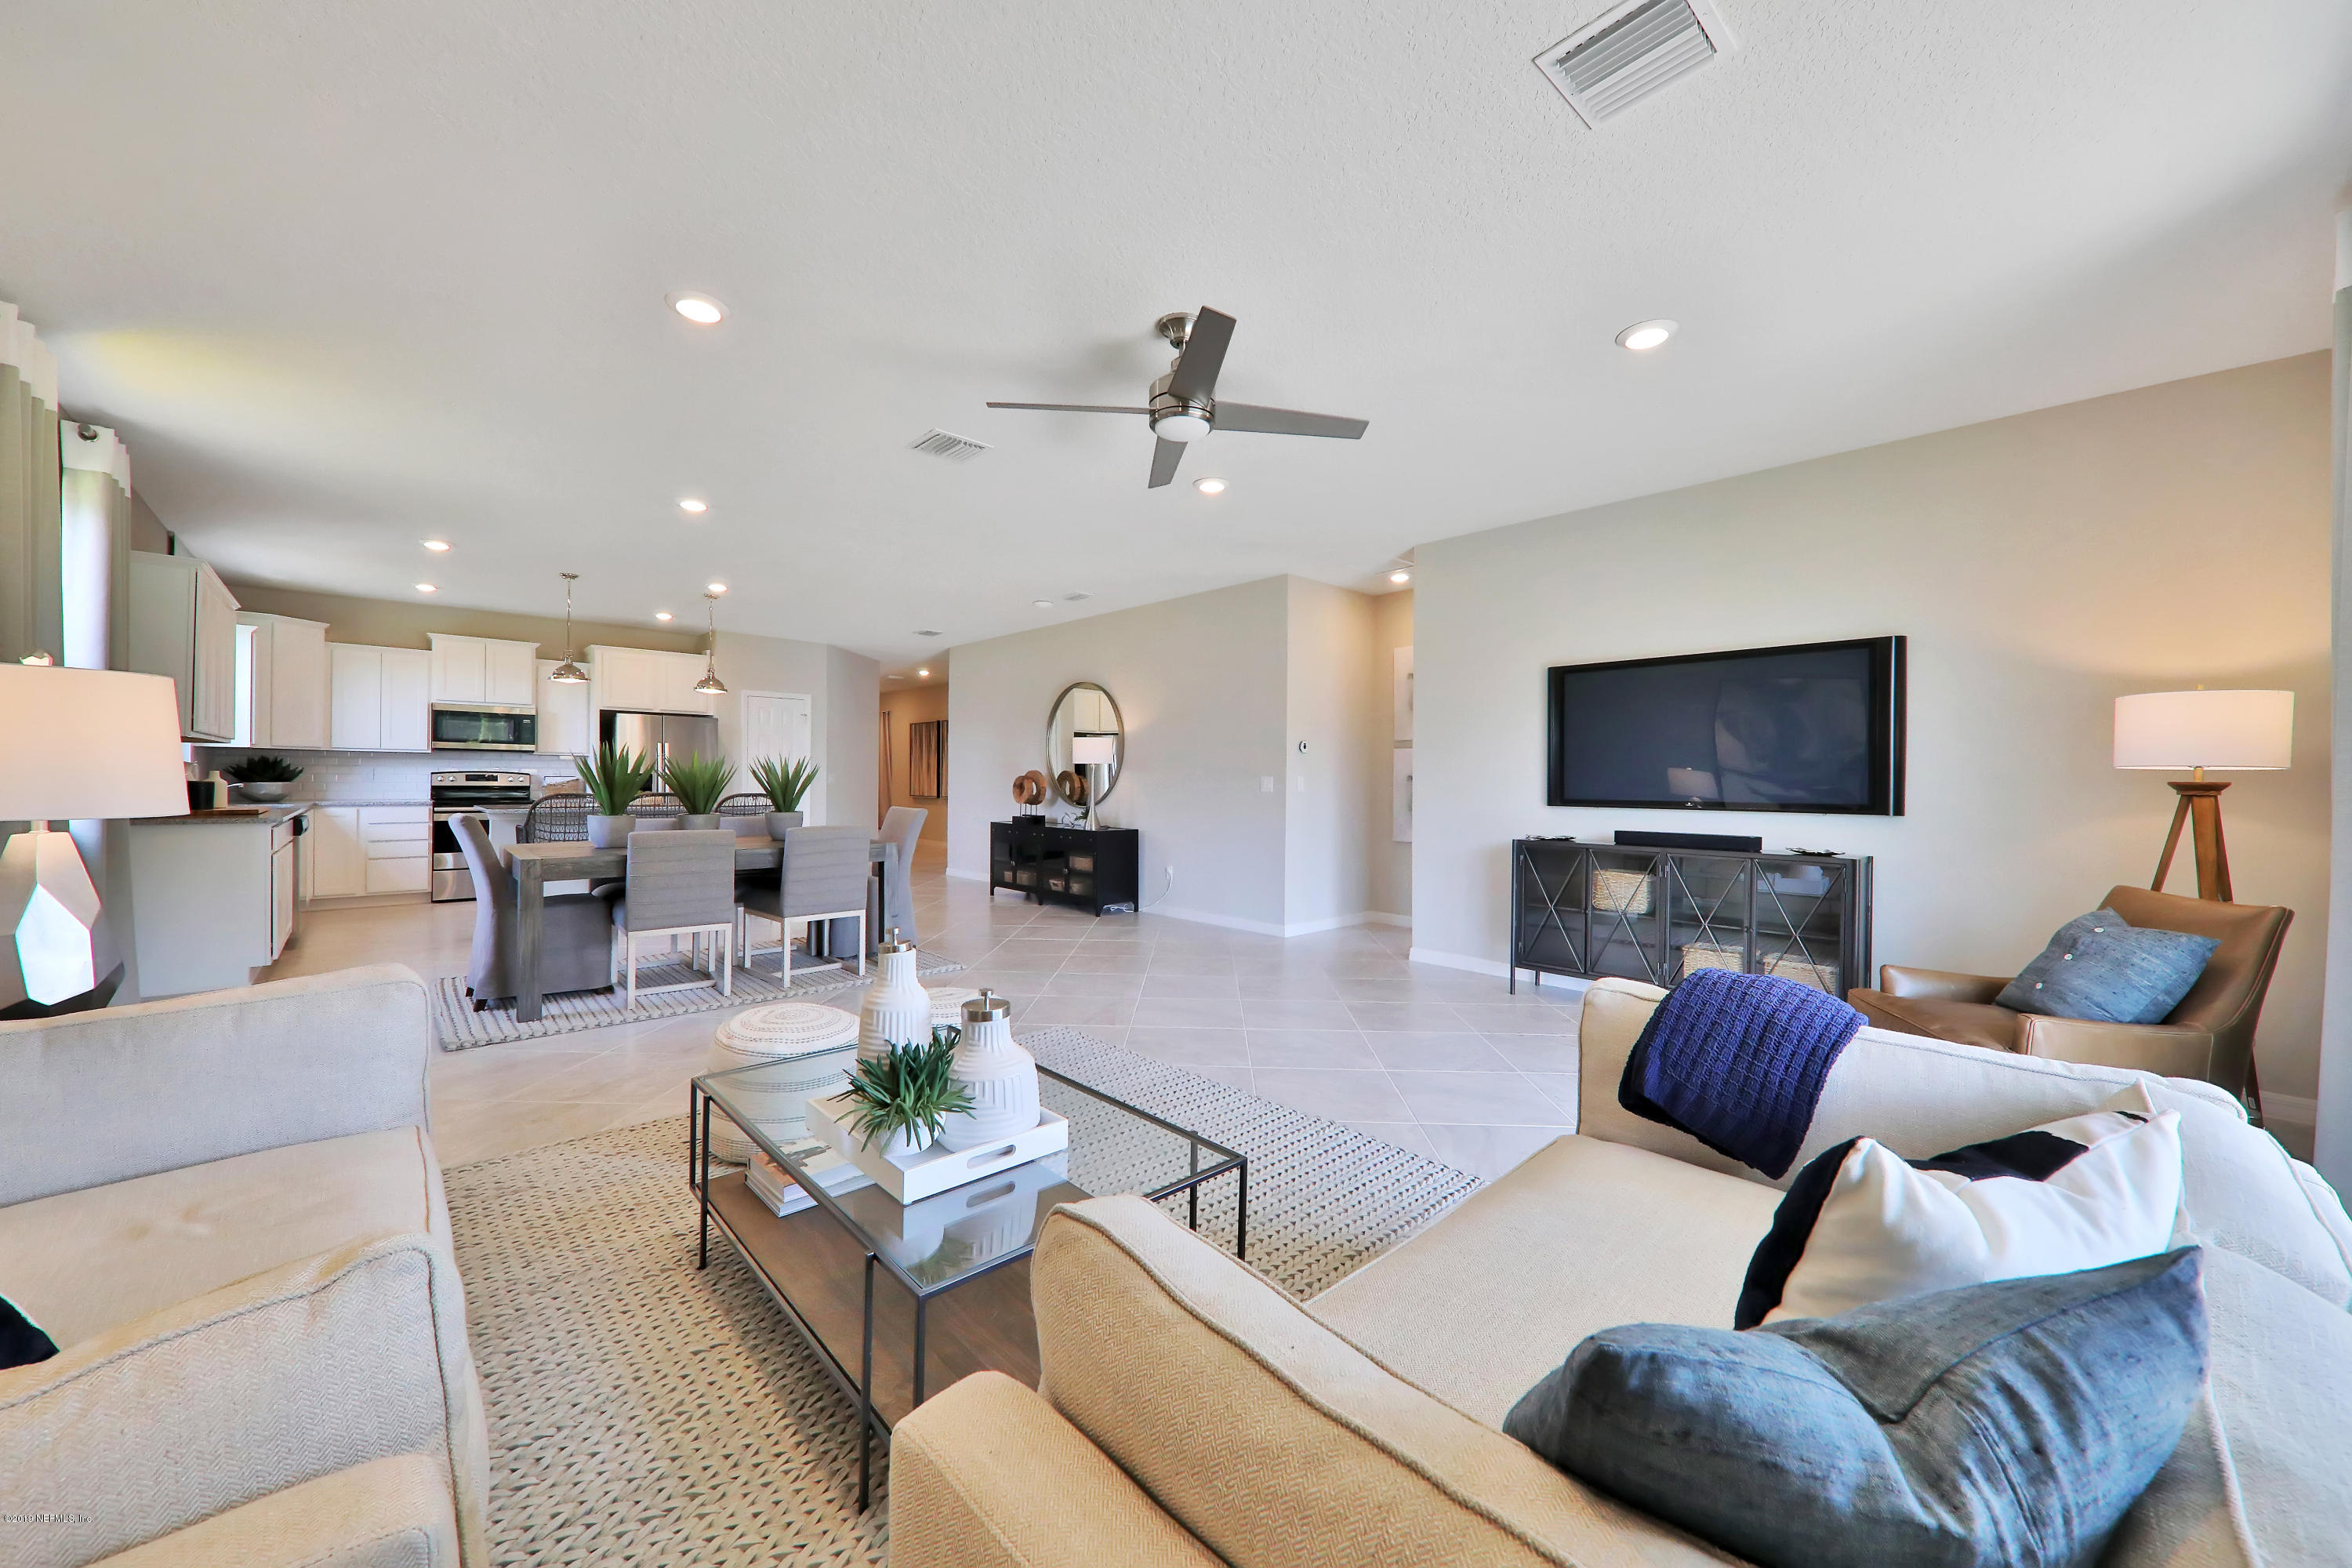 194 BROOMSEDGE CIR ST AUGUSTINE - 7